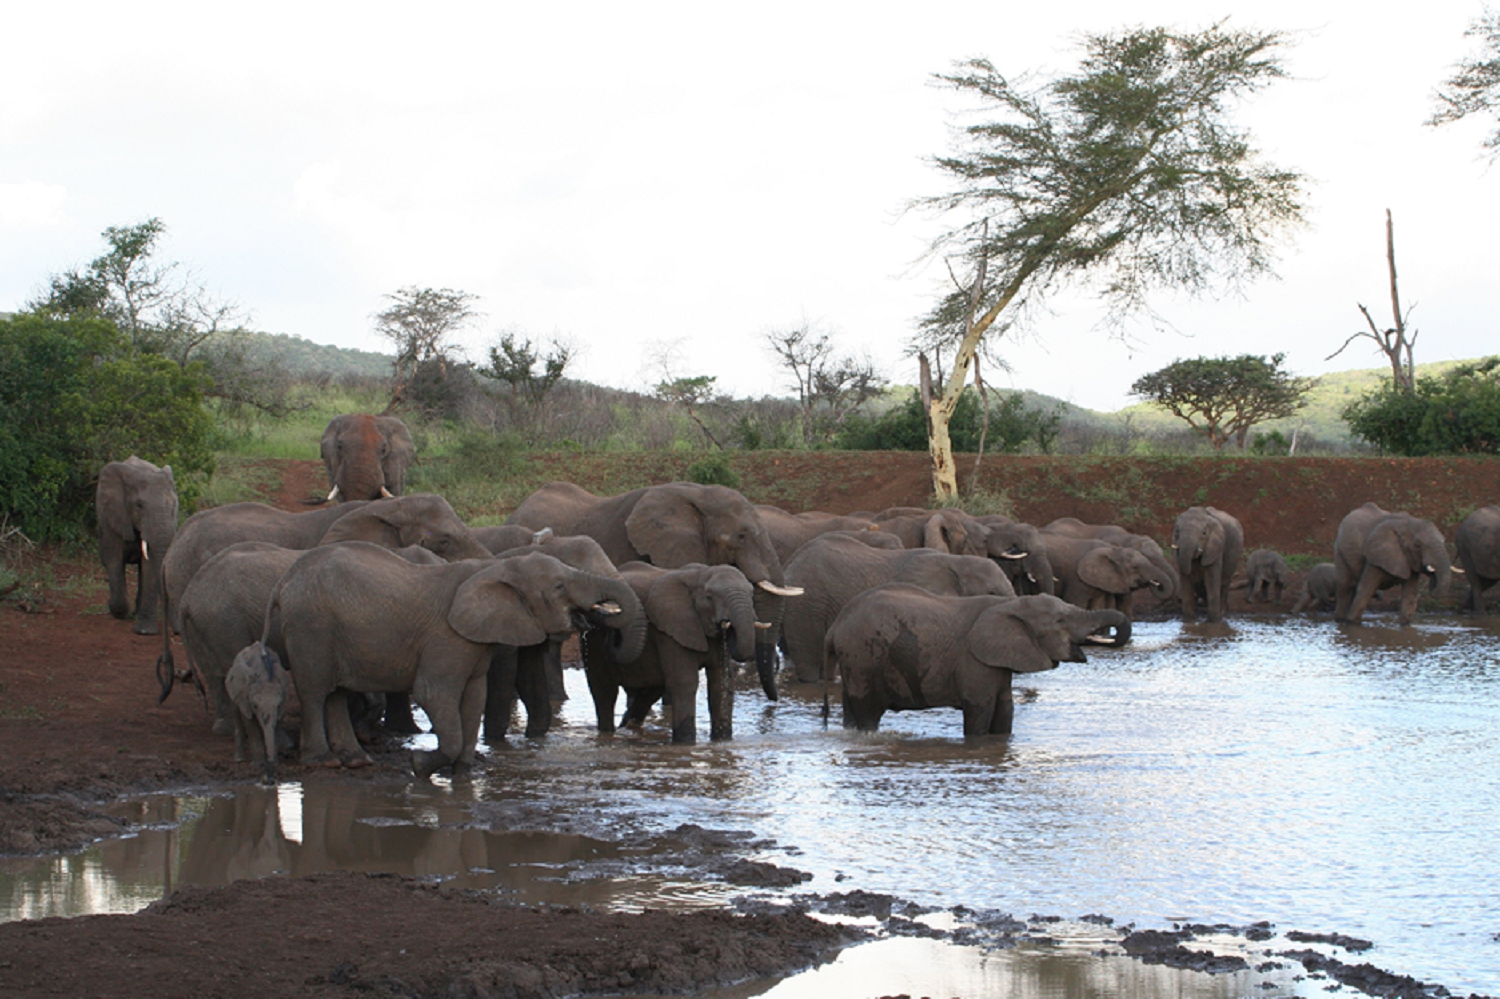 elephants-luxury-fashion-jewelry-jewellery-wearable-art-poaching-CITES-beautiful, compassionate-sustainable-natural-